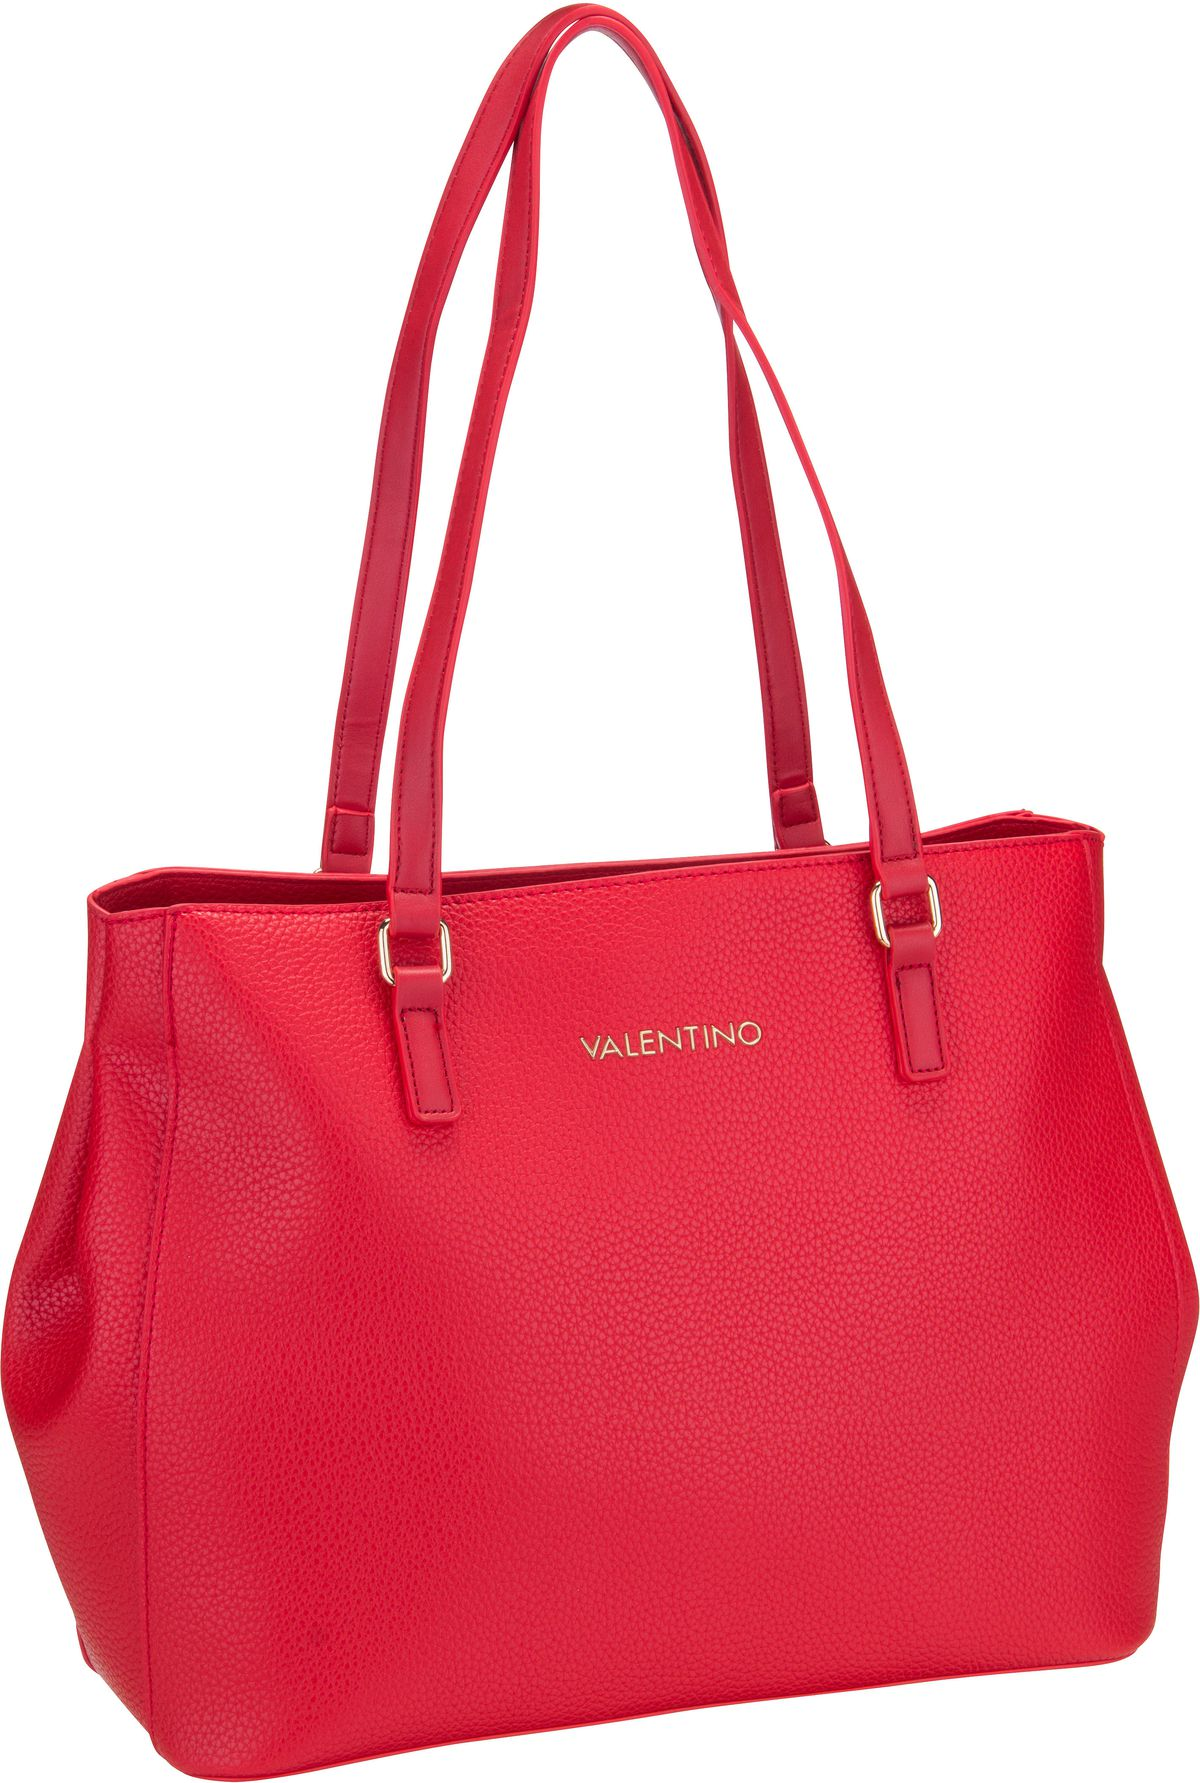 Bags Shopper Superman Shopping U801 Rosso